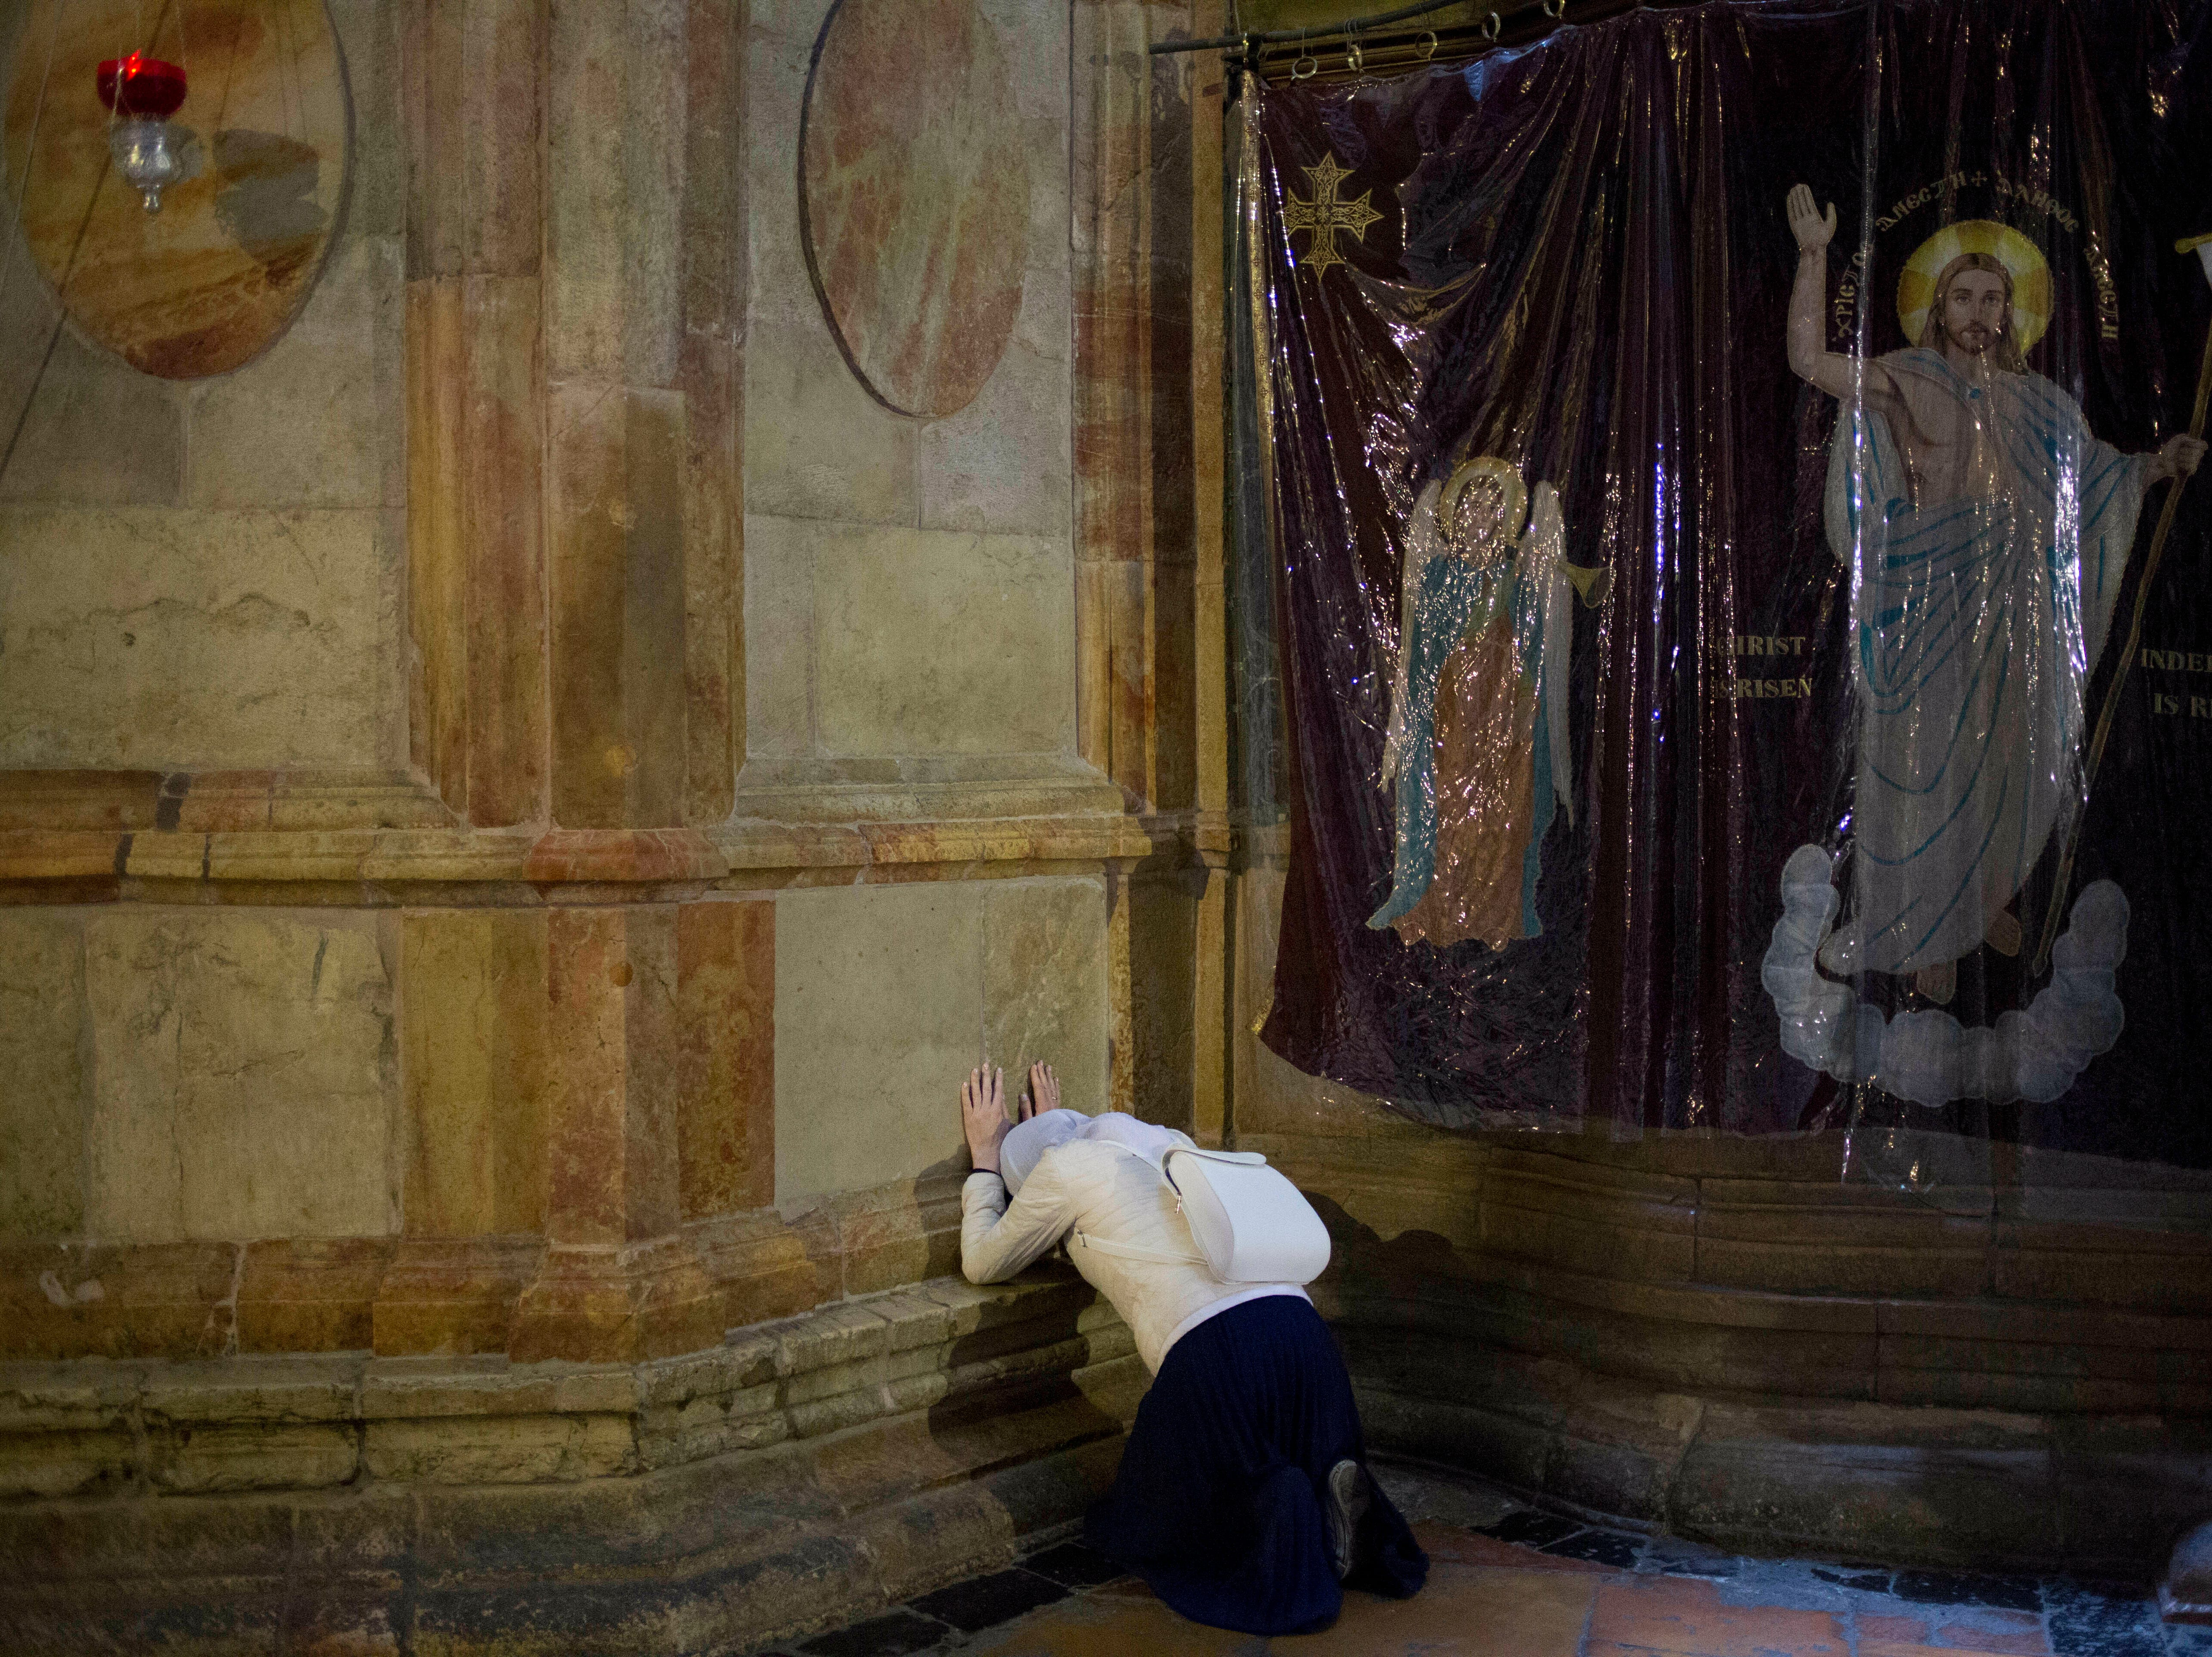 Christians pilgrims pray during the Holy Week at the Church of the Holy Sepulchre, traditionally believed by many Christians to be the site of the crucifixion and burial of Jesus Christ, in Jerusalem's old city, during the Holy Week, Monday, April 15, 2019.